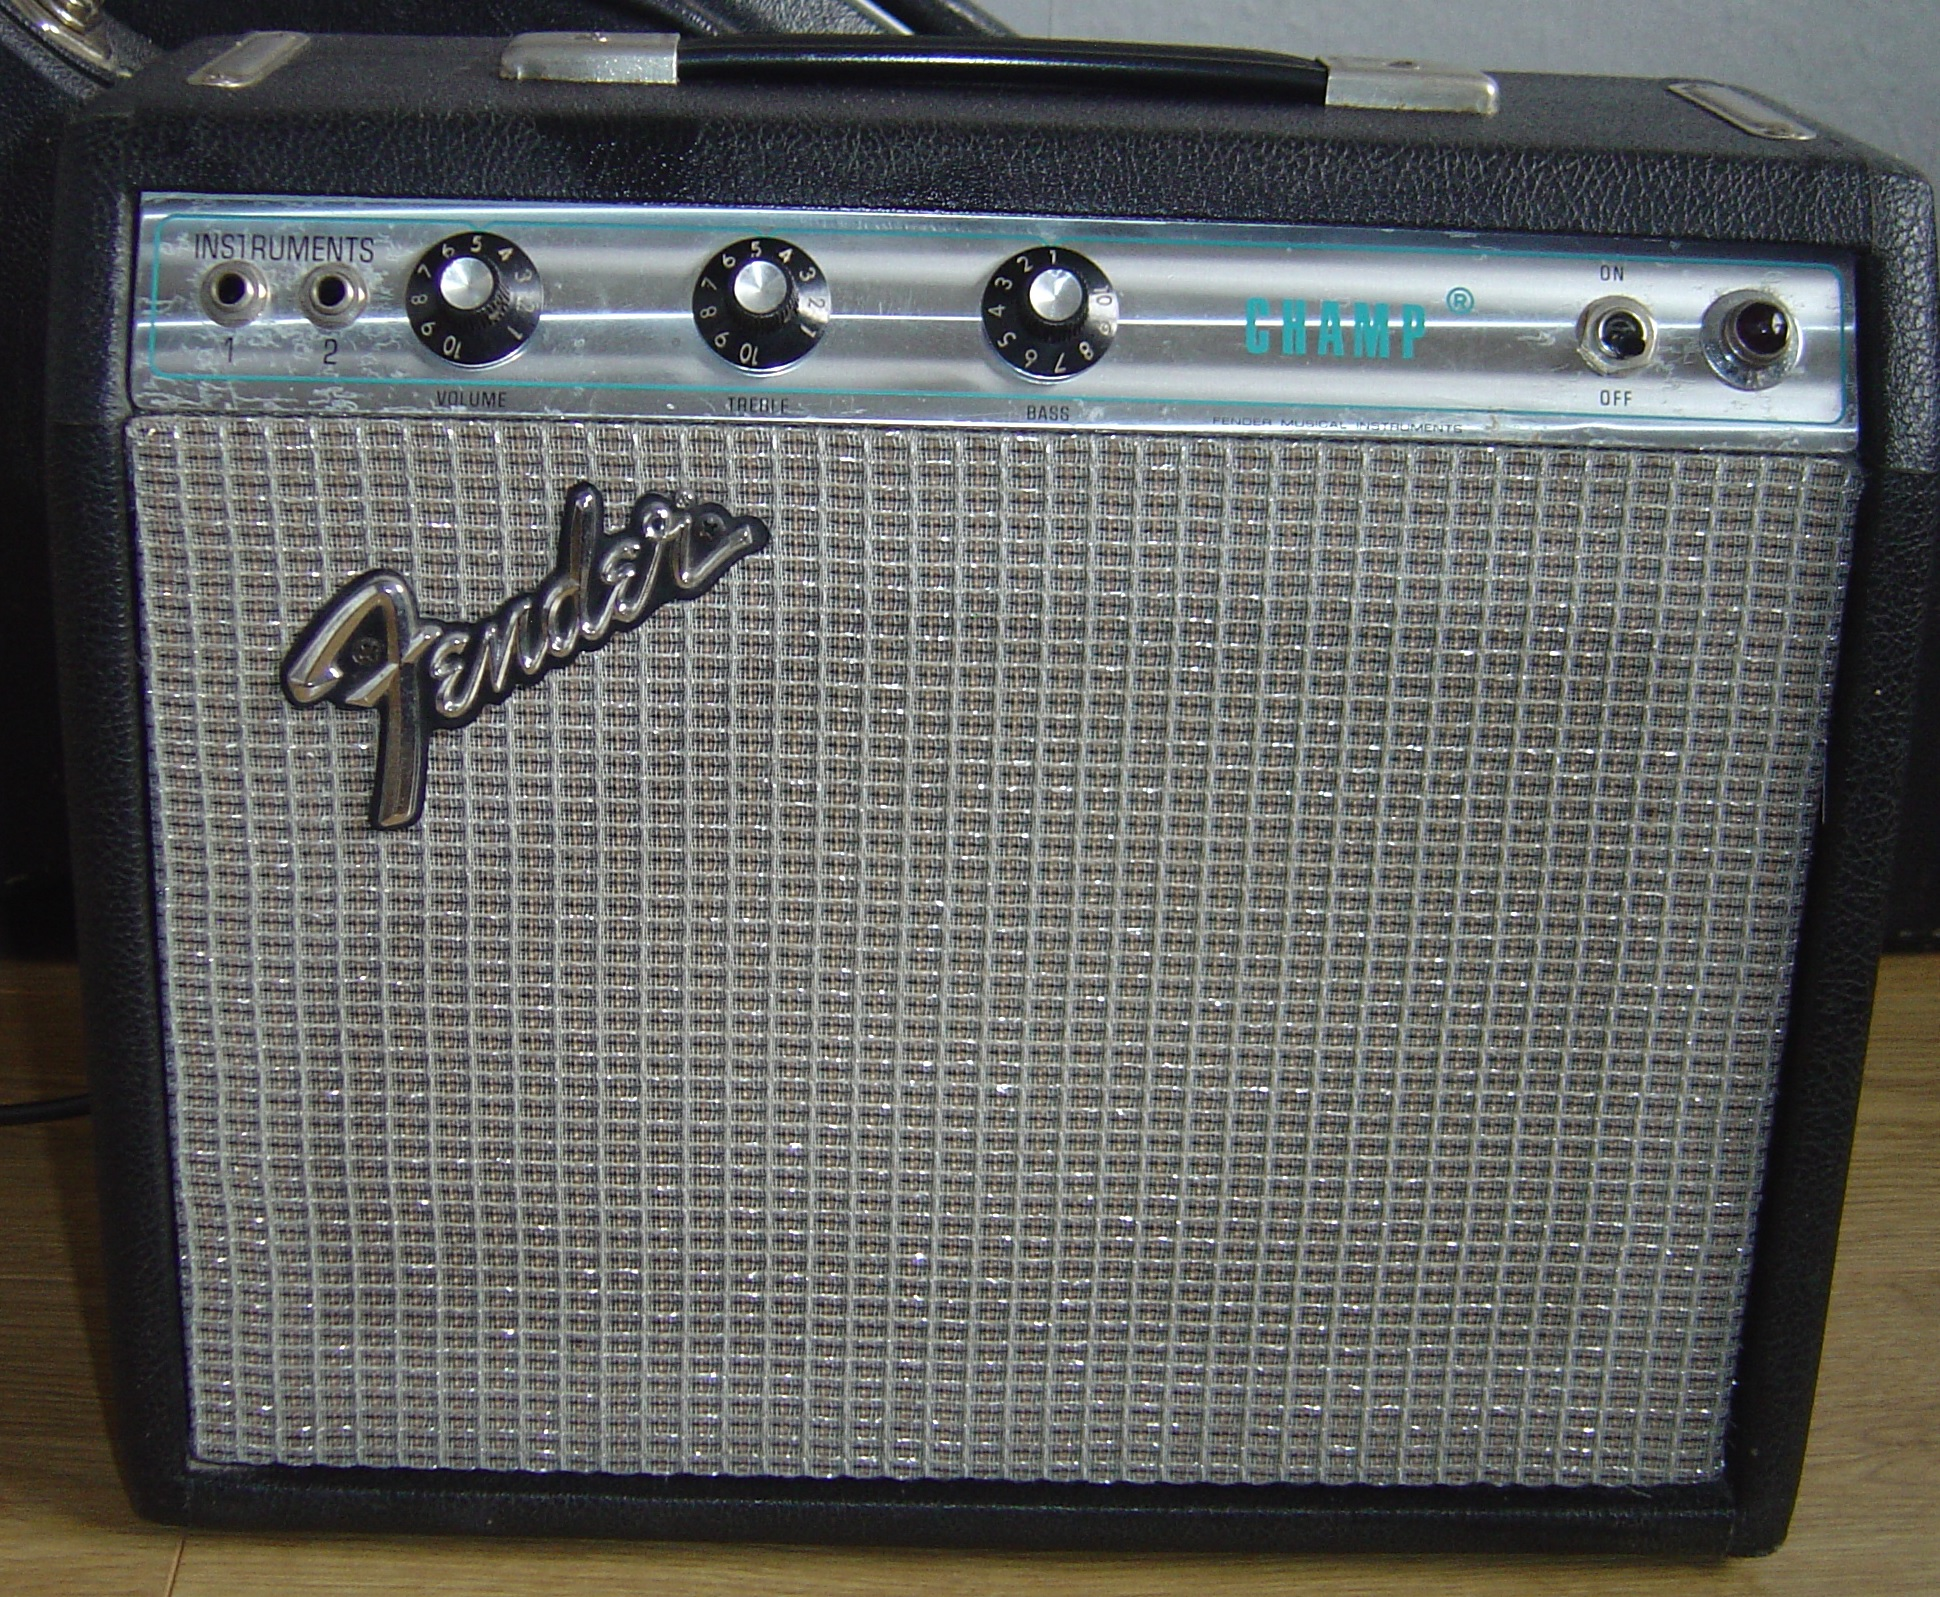 fender silverface champ dating Production years: 1964 – 1967 blackface vibro champ aa764 1964 – 1967 blackface champ aa764 1968 – 1982 silverface vibro champ aa764 1968 – 1982 silverface champ aa764 schematic and tube layout vibrochamp- schematic vibrochamp-layout aa764 tube layout (seen from behind, v1 is to the right side.